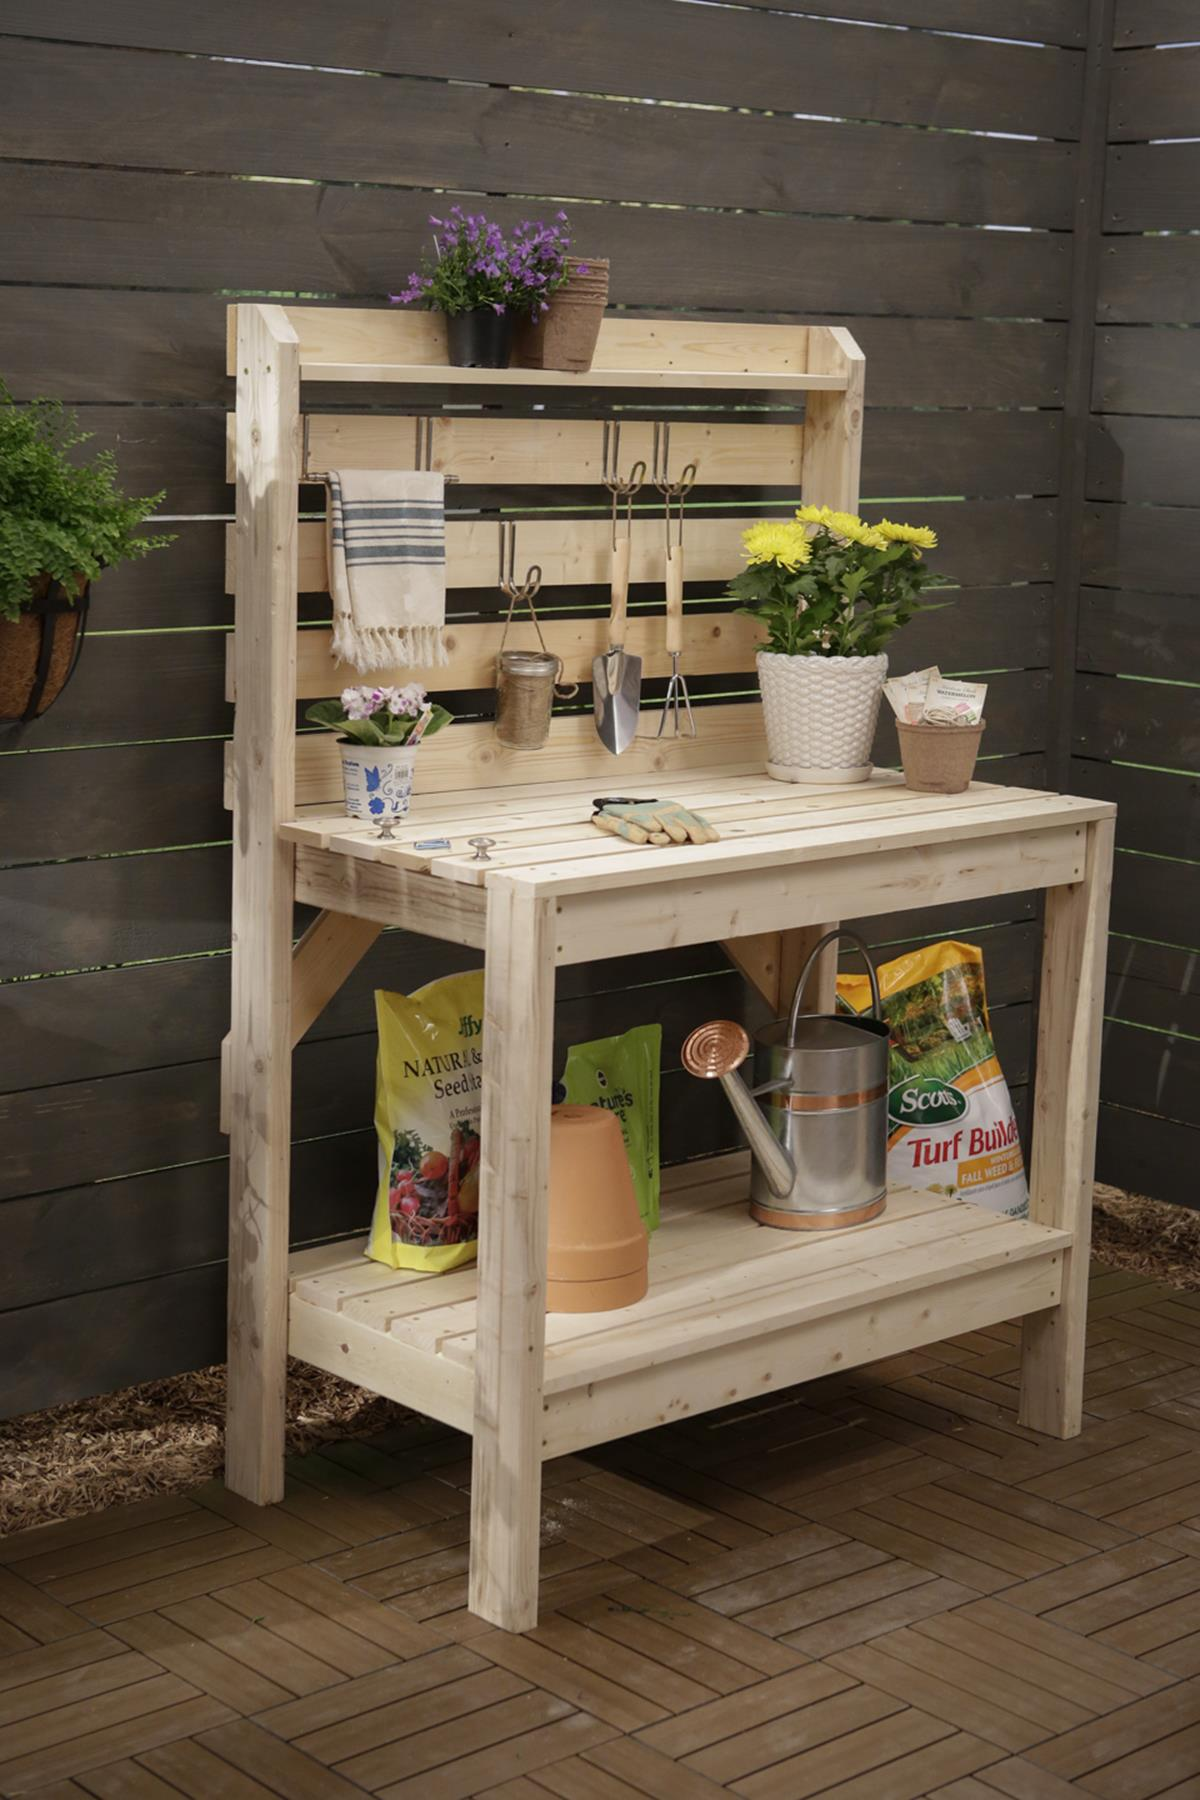 Outdoor Garden Potting Bench Design Ideas 32